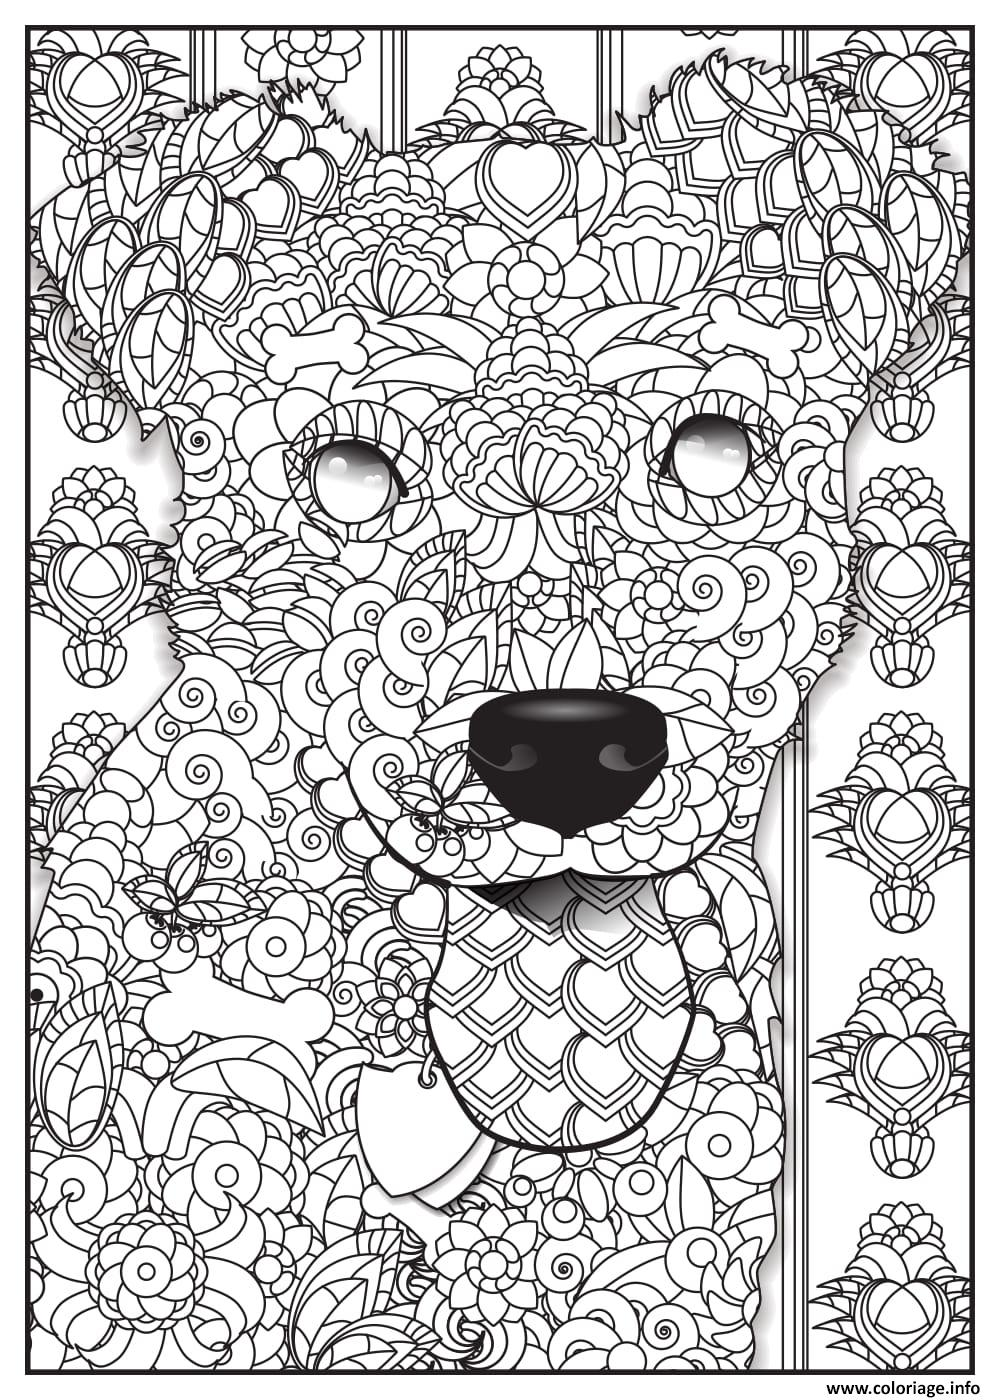 Coloriage Magique Animaux Sauvages.Lovely Coloriage Magique Loup Inspirant Coloriage Magique Loup